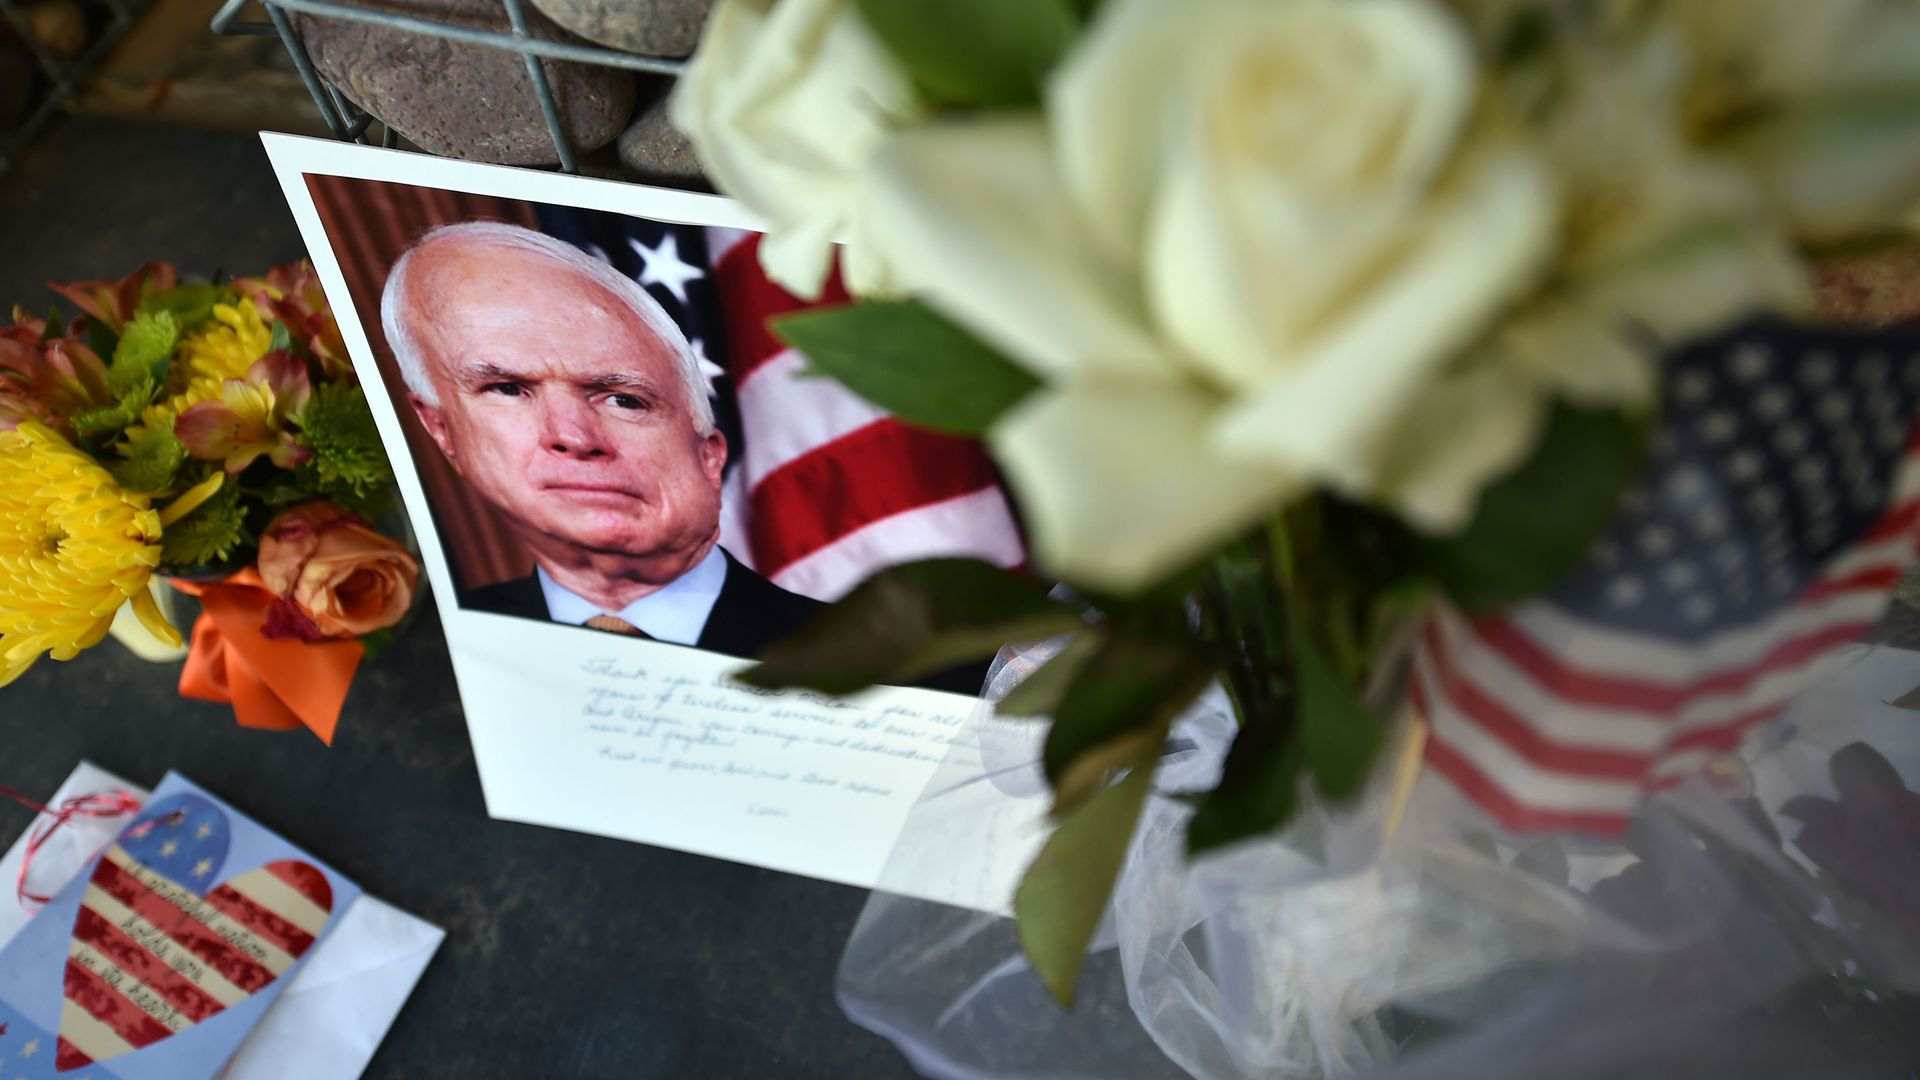 A makeshift memorial for Sen. John McCain outside his office in Phoenix, Arizona. Photo: Robyn Beck/AFP/Getty Images